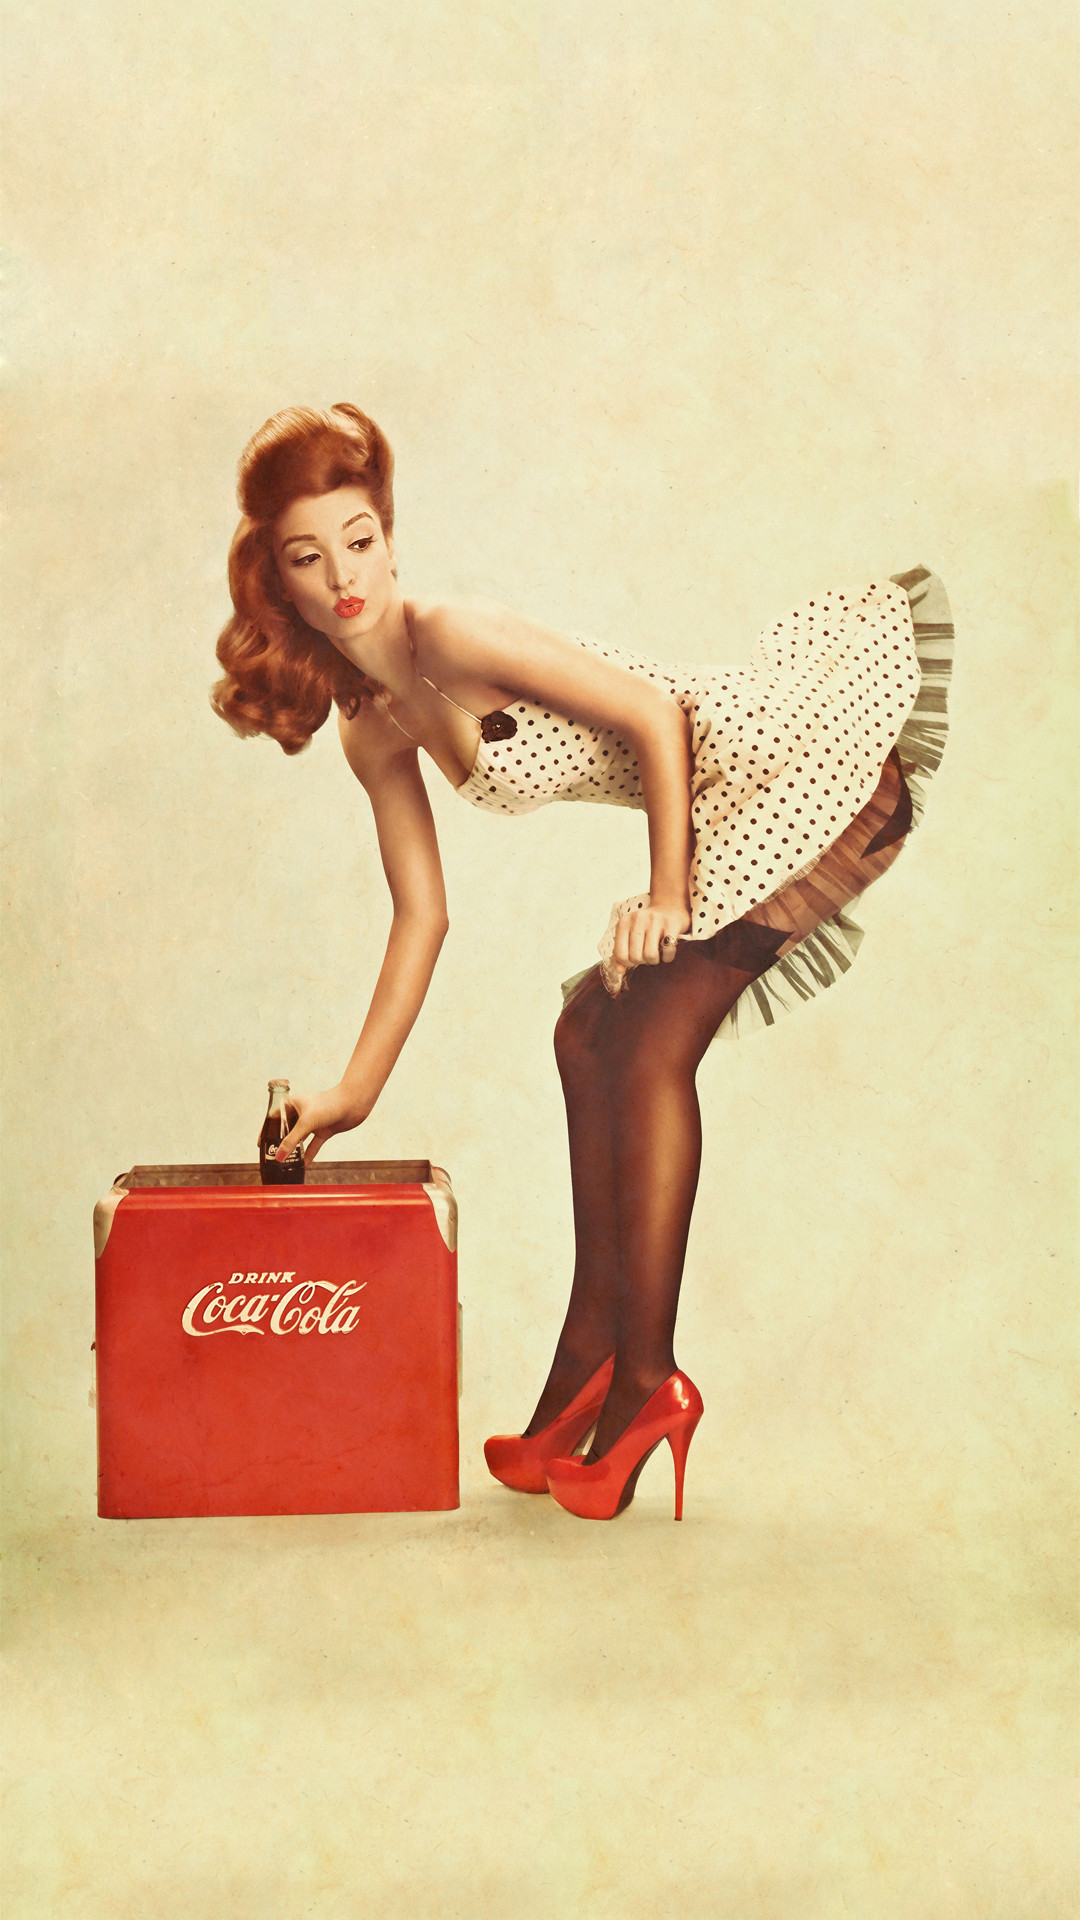 Coca Cola Pin Up Girl Iphone Wallpaper Iphone Wallpaper